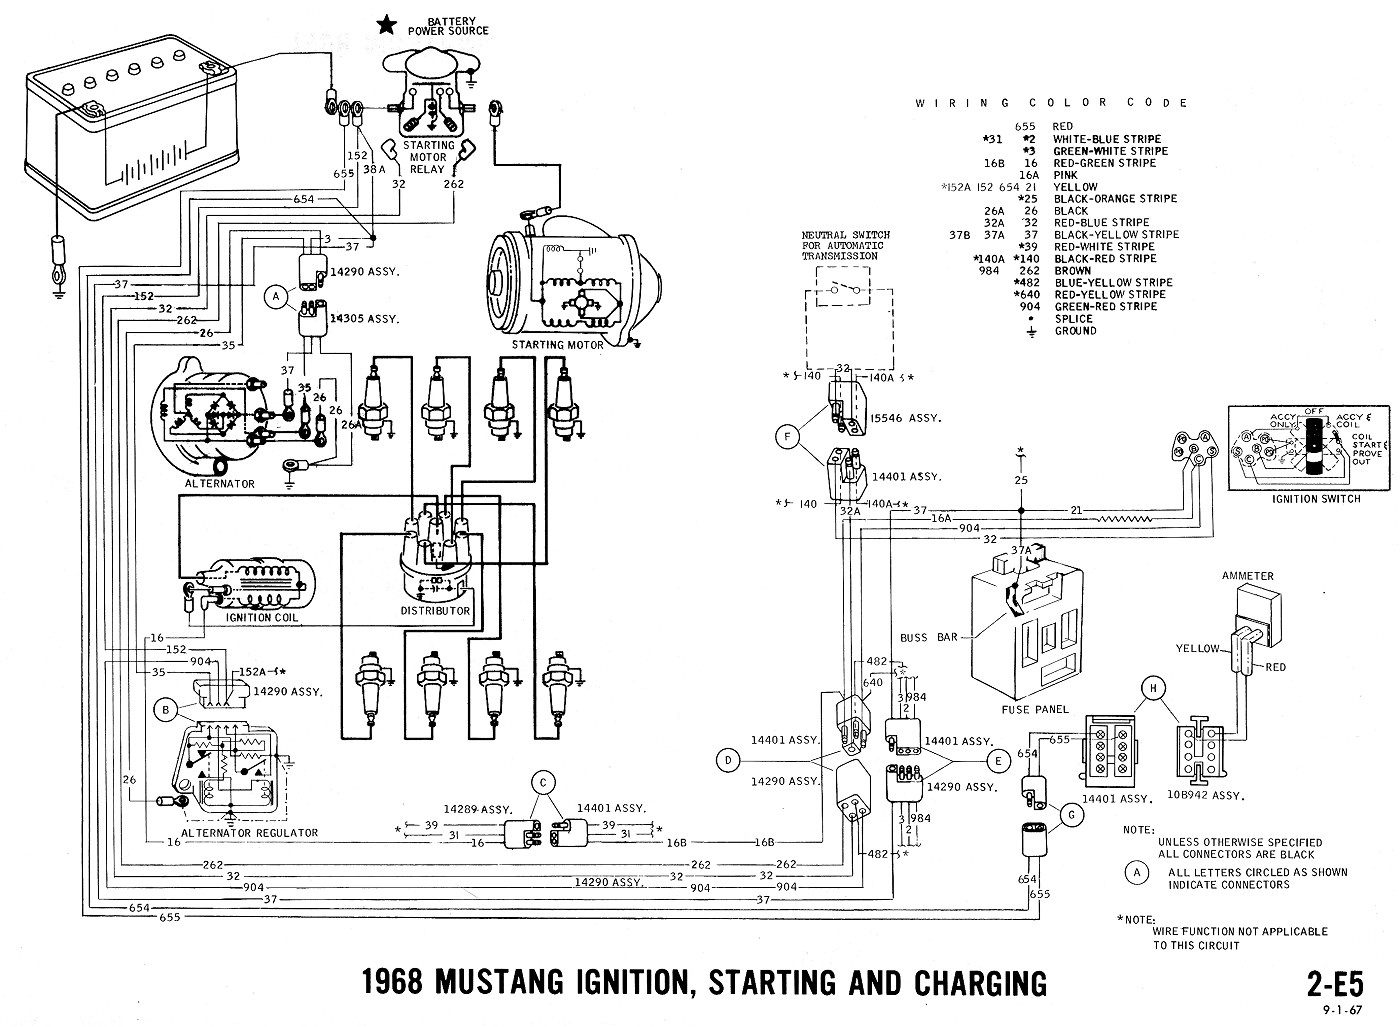 E5 98 mustang wiring diagram data wiring diagram